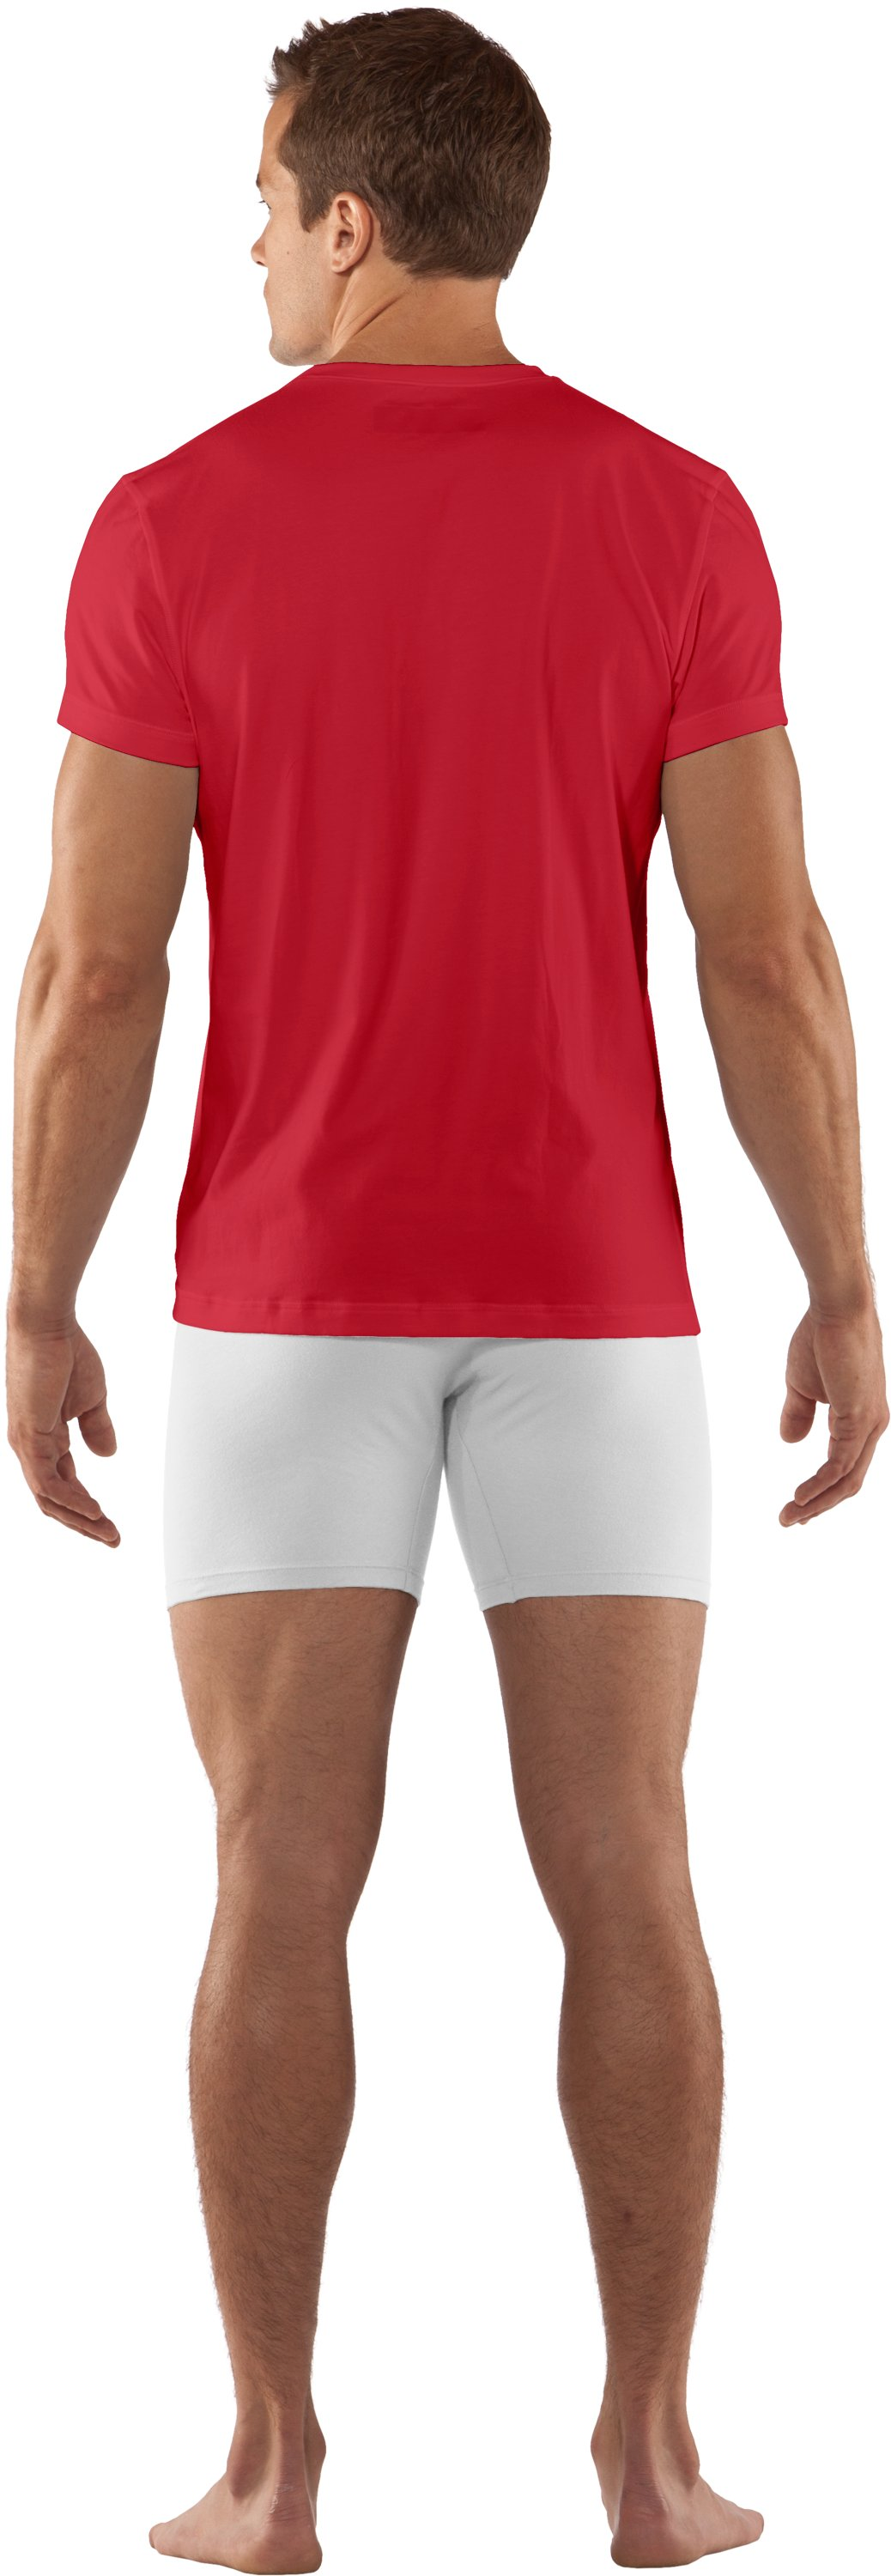 Men's Charged Cotton® Crew Undershirt, Red, Back